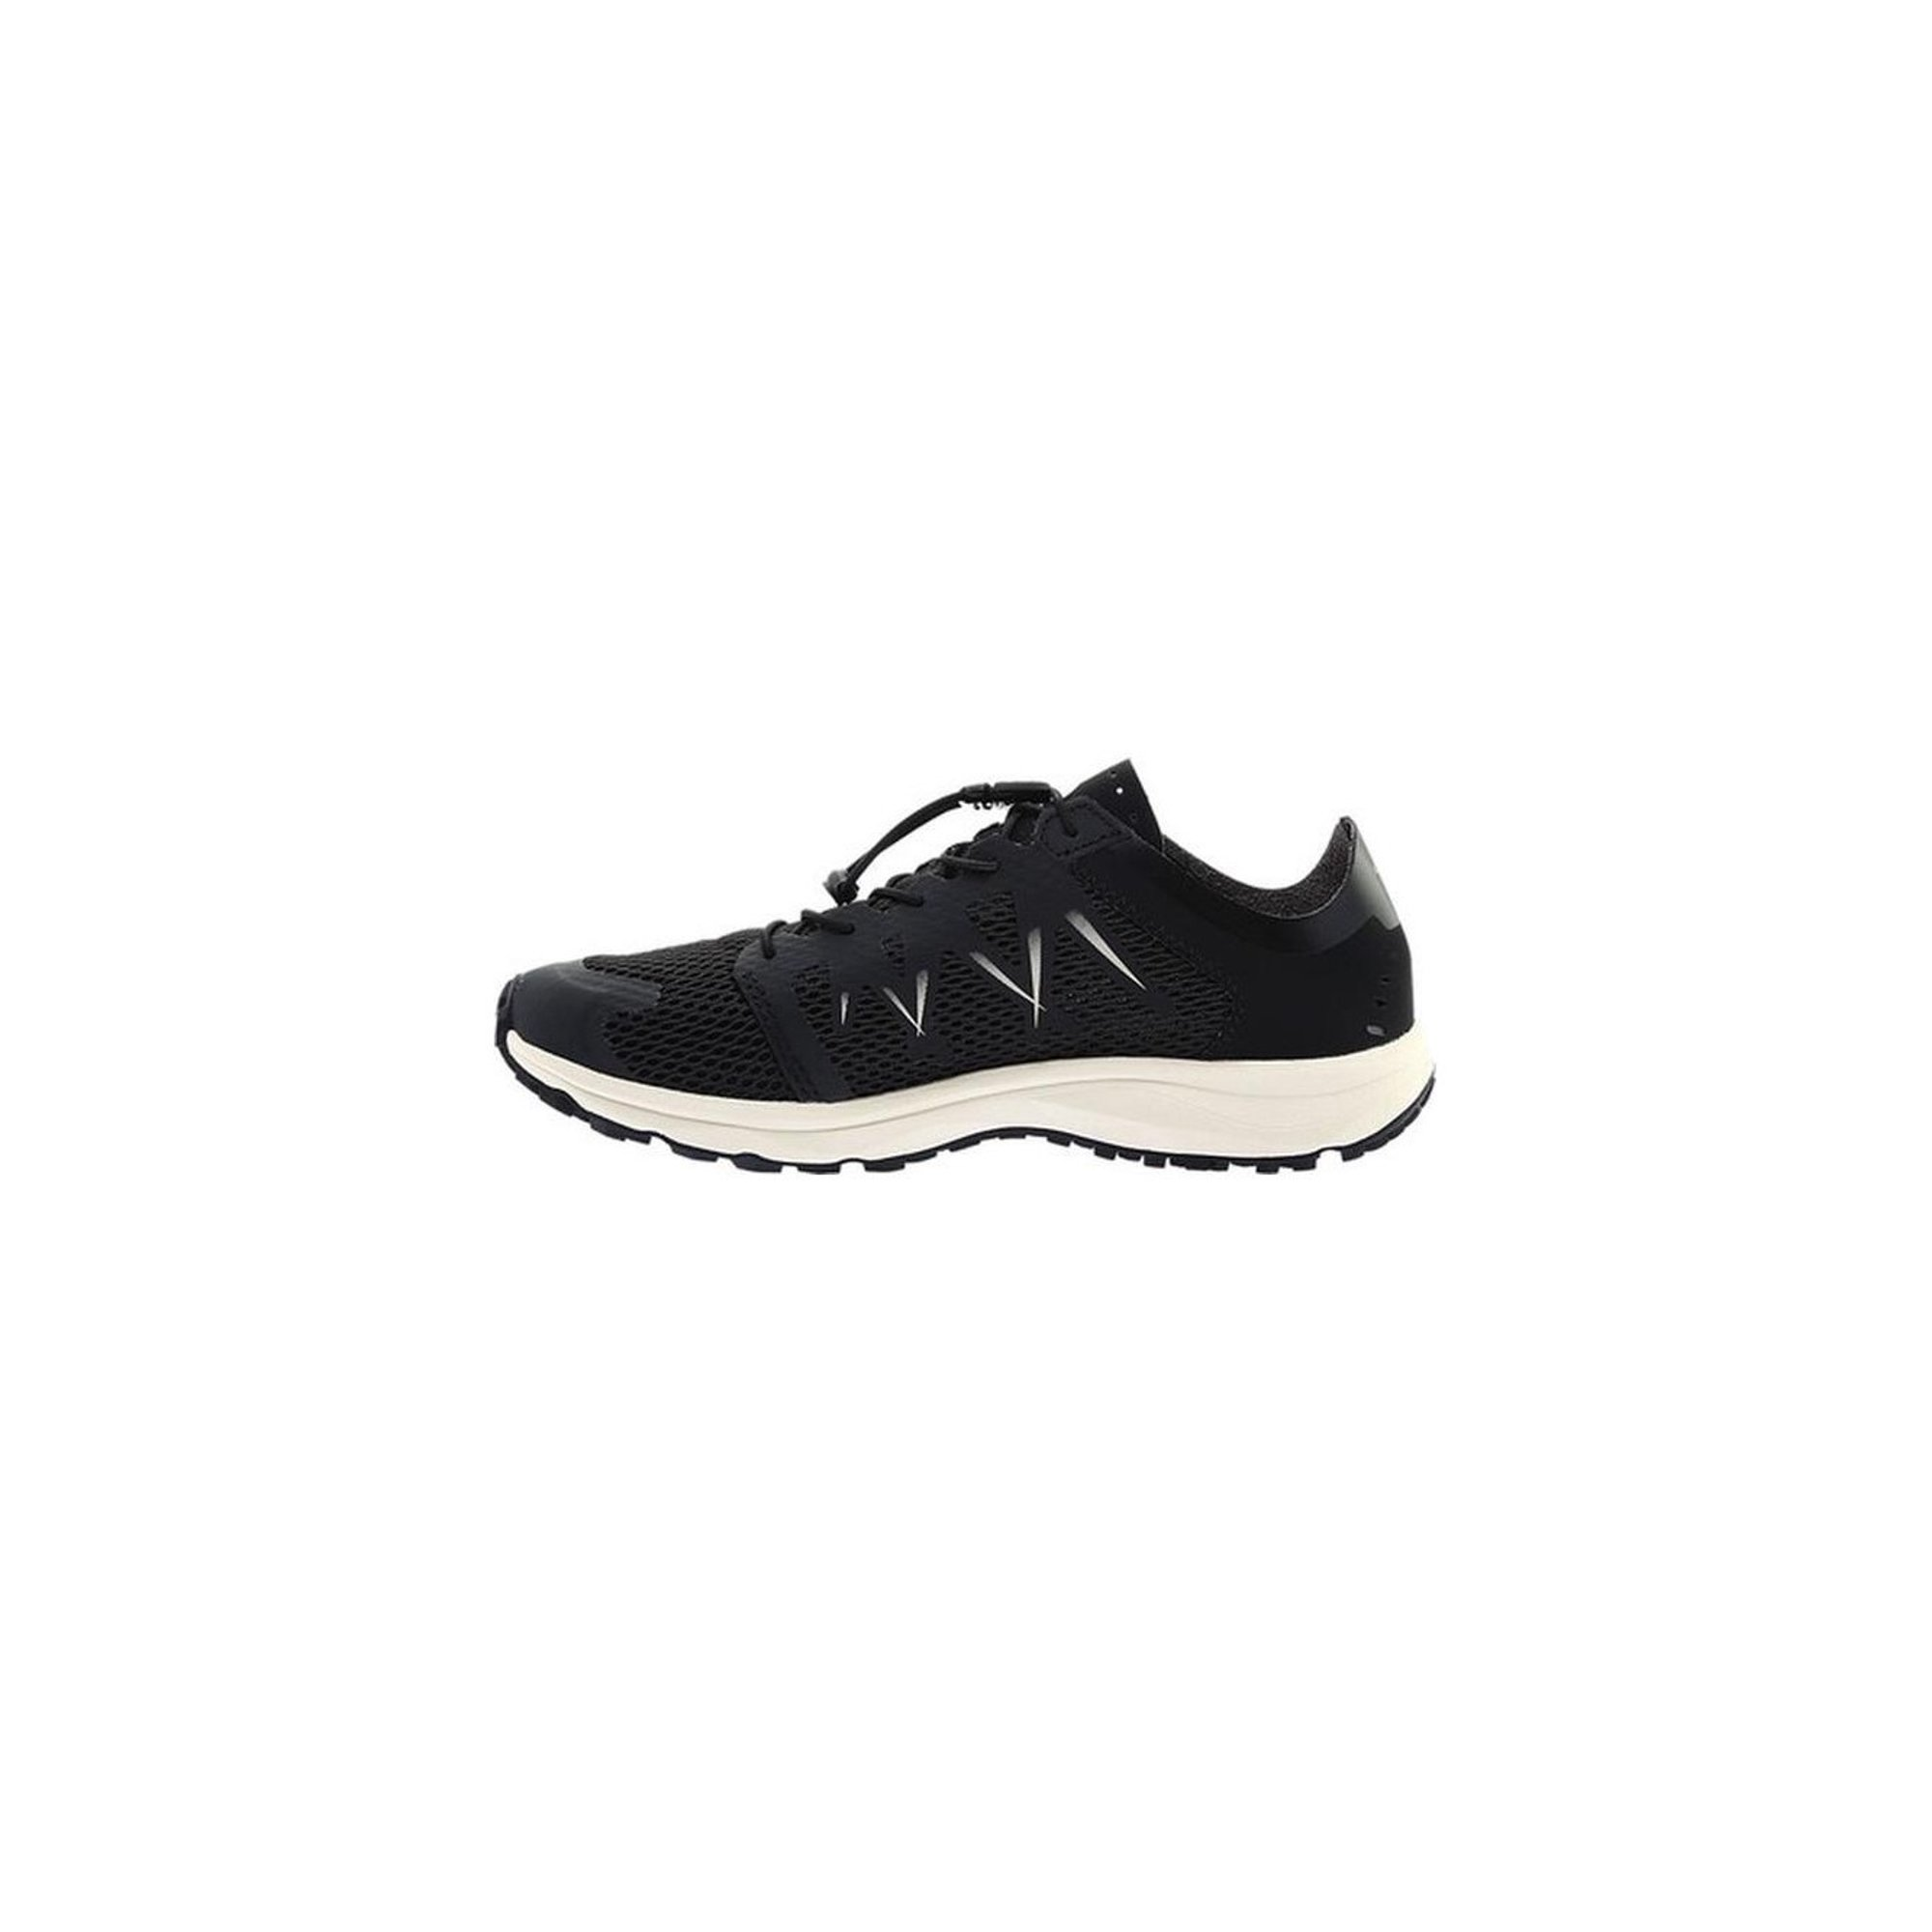 ed3fa52c9 The North Face Womens Litewave Flow Lace Low Top Bungee Walking ...